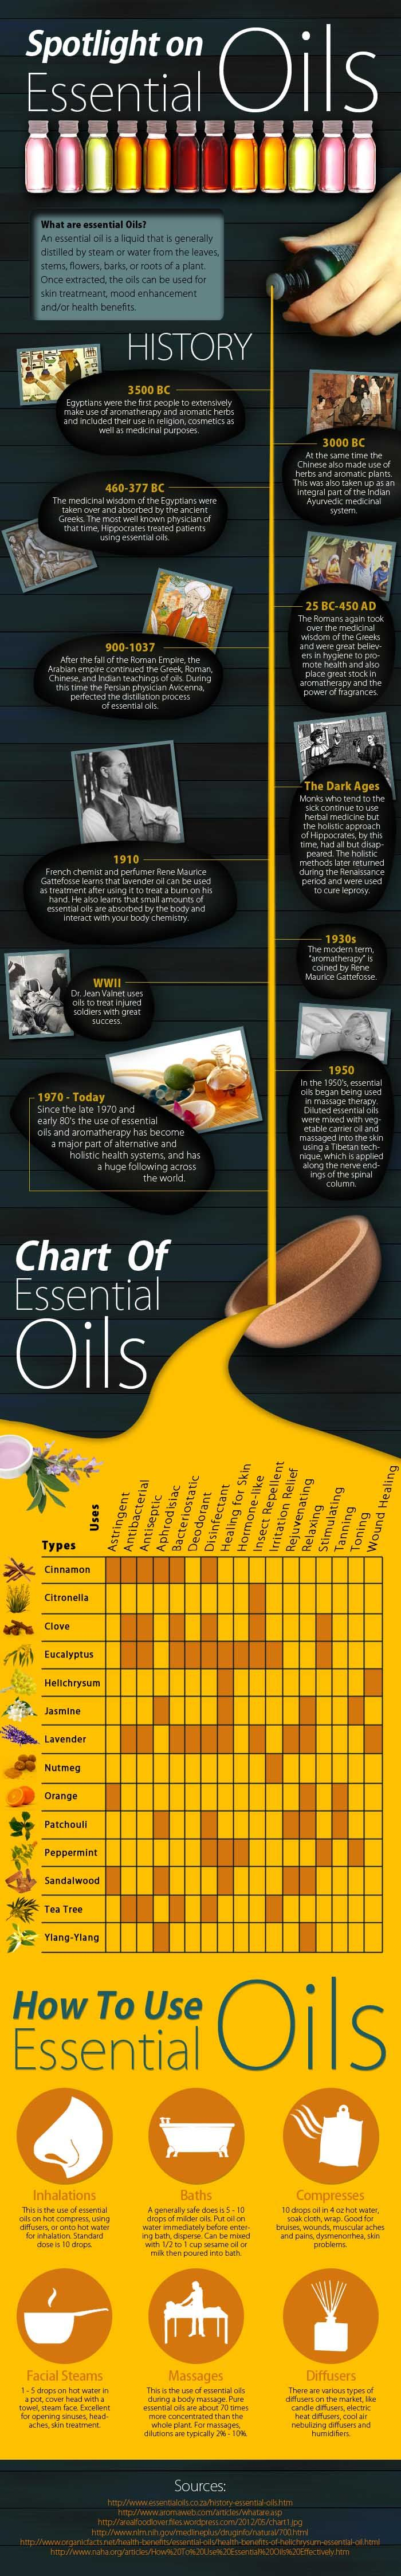 Essential Oils: Everything You Need To Know #Infographic @MindBodyGreen